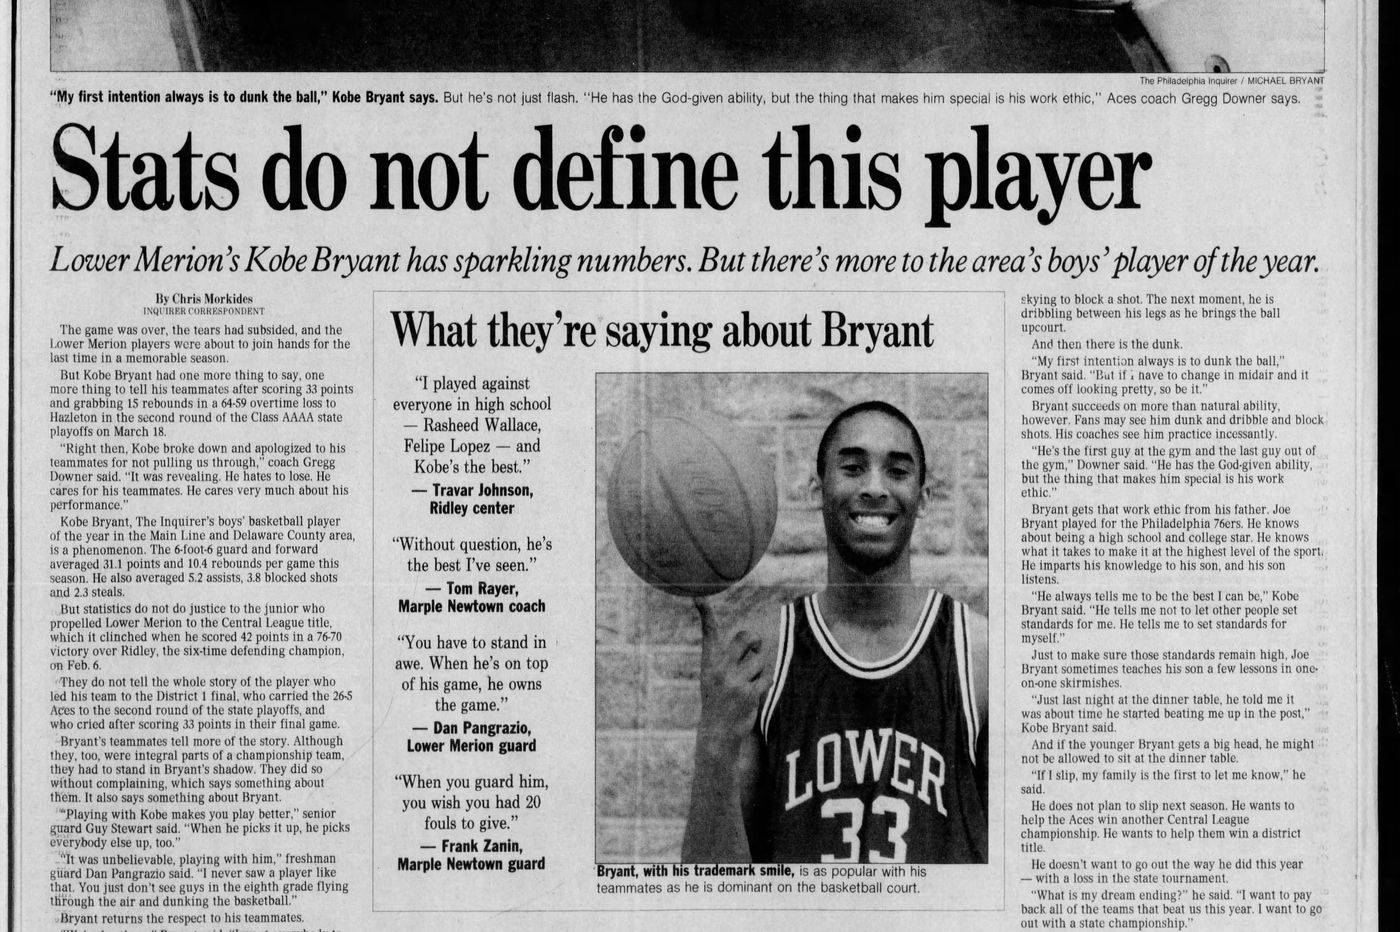 From the archives: There's more to Lower Merion's Kobe Bryant, the area's boy's player of the year in 1994-95